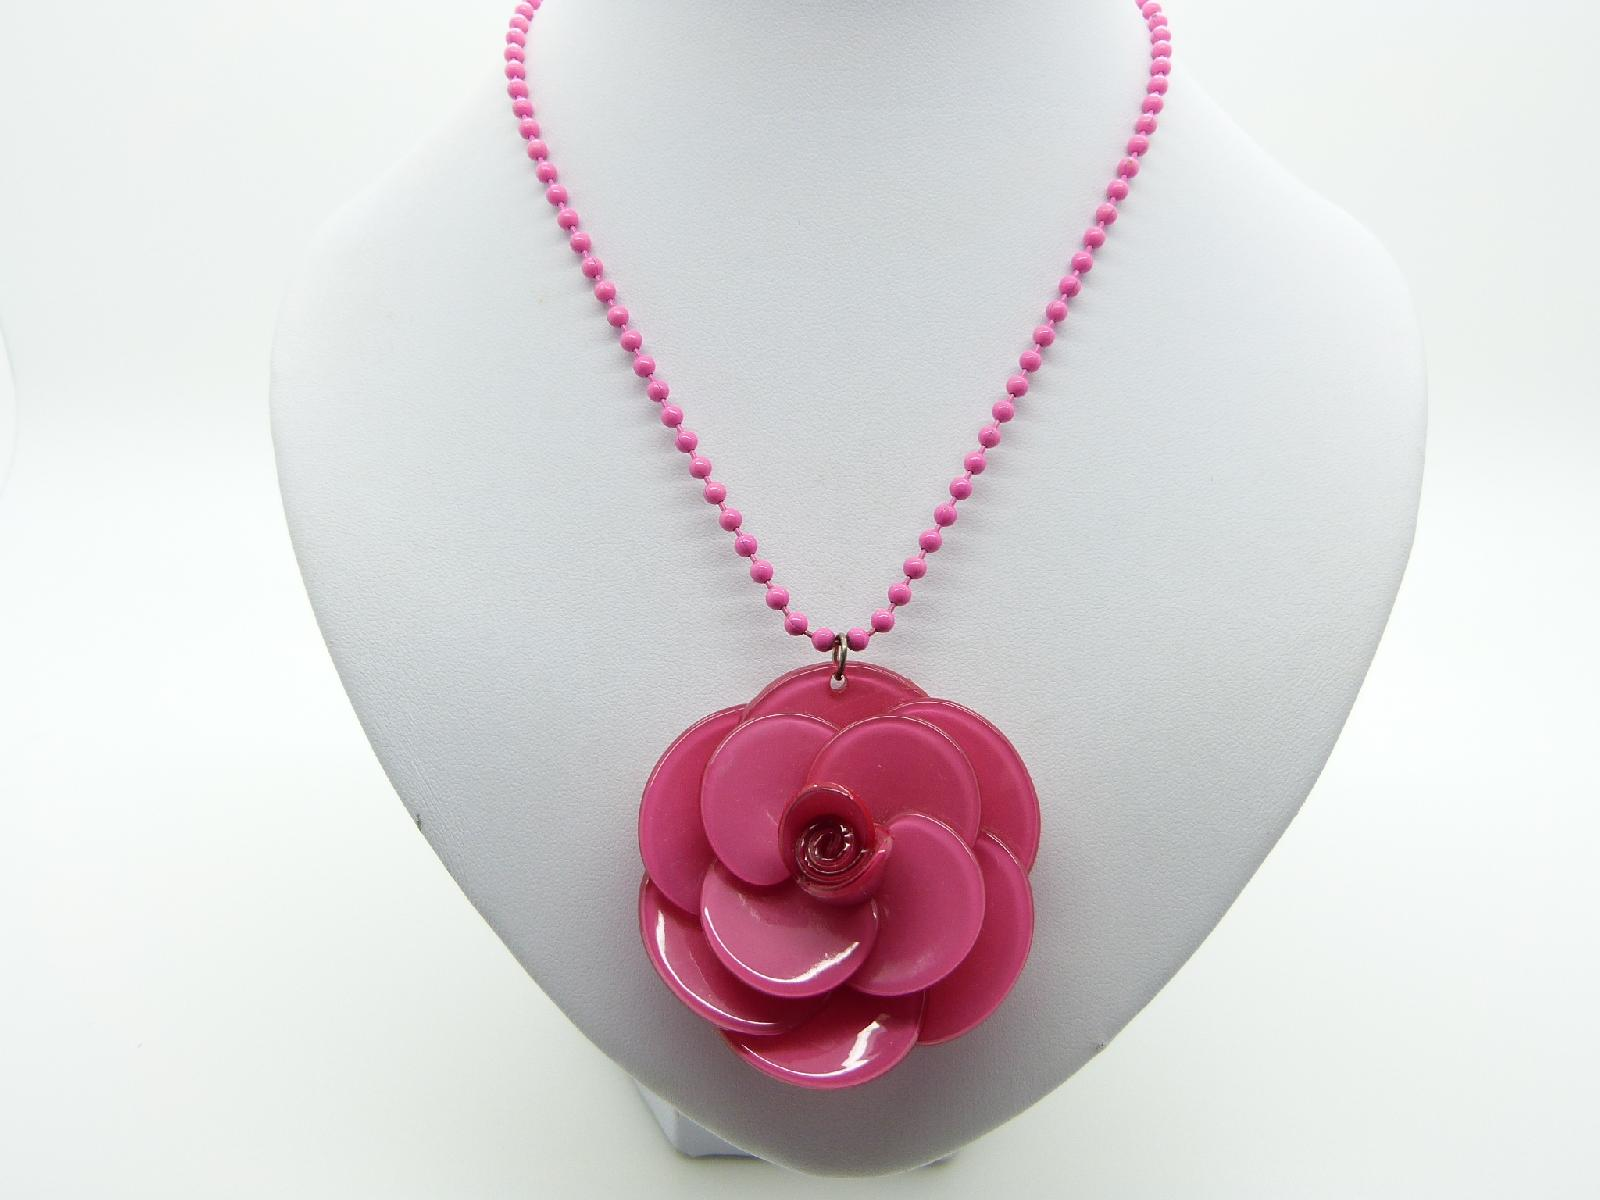 Fabulous Genuine Big Baby Bright Cerise Pink 3D Rose Pendant Necklace